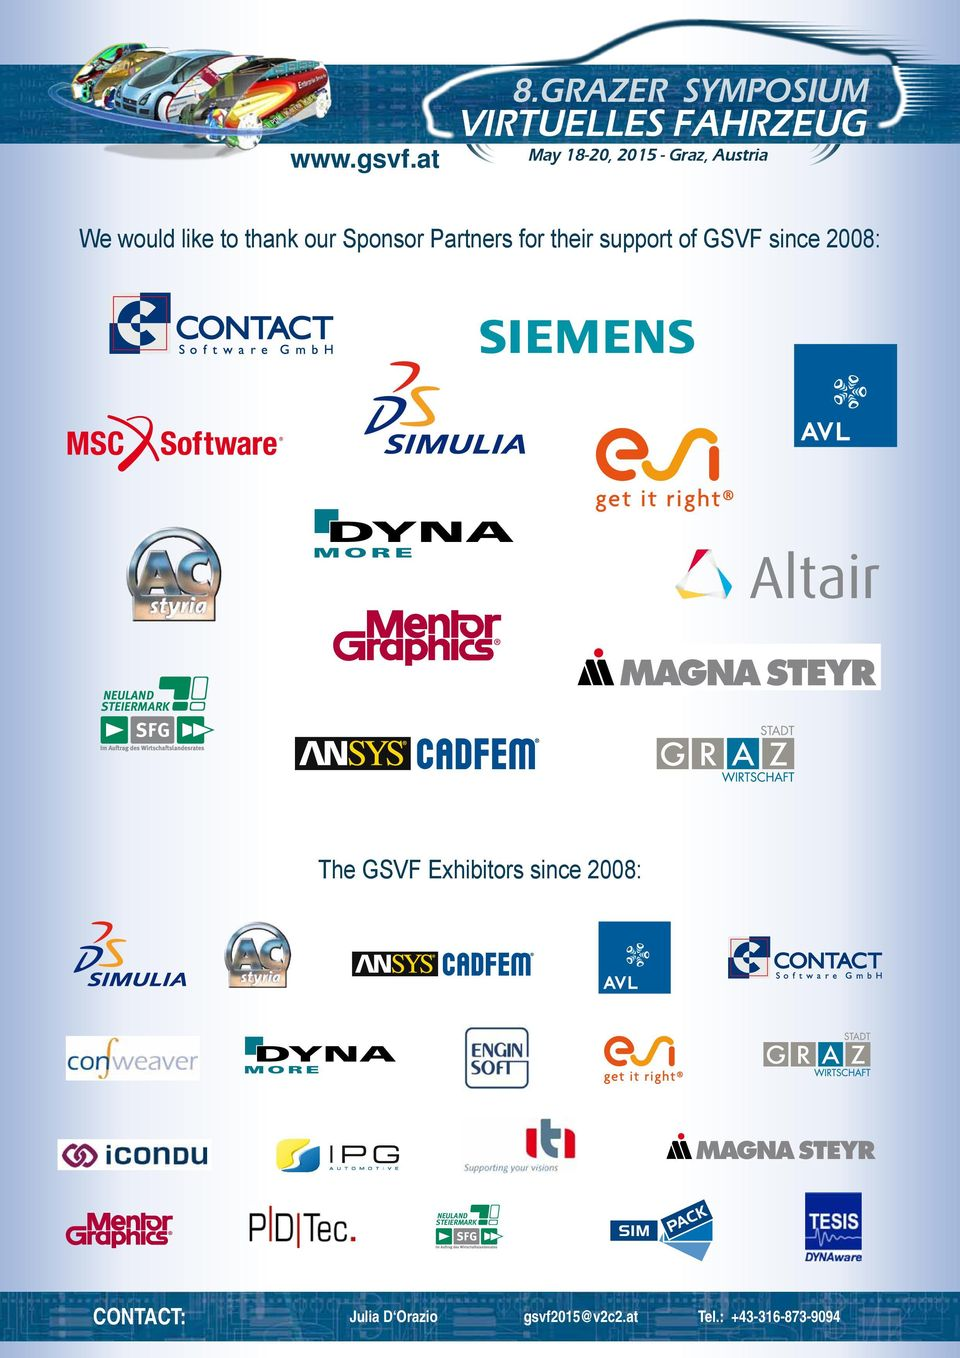 The GSVF Exhibitors since 2008: NEULAND STEIERMARK